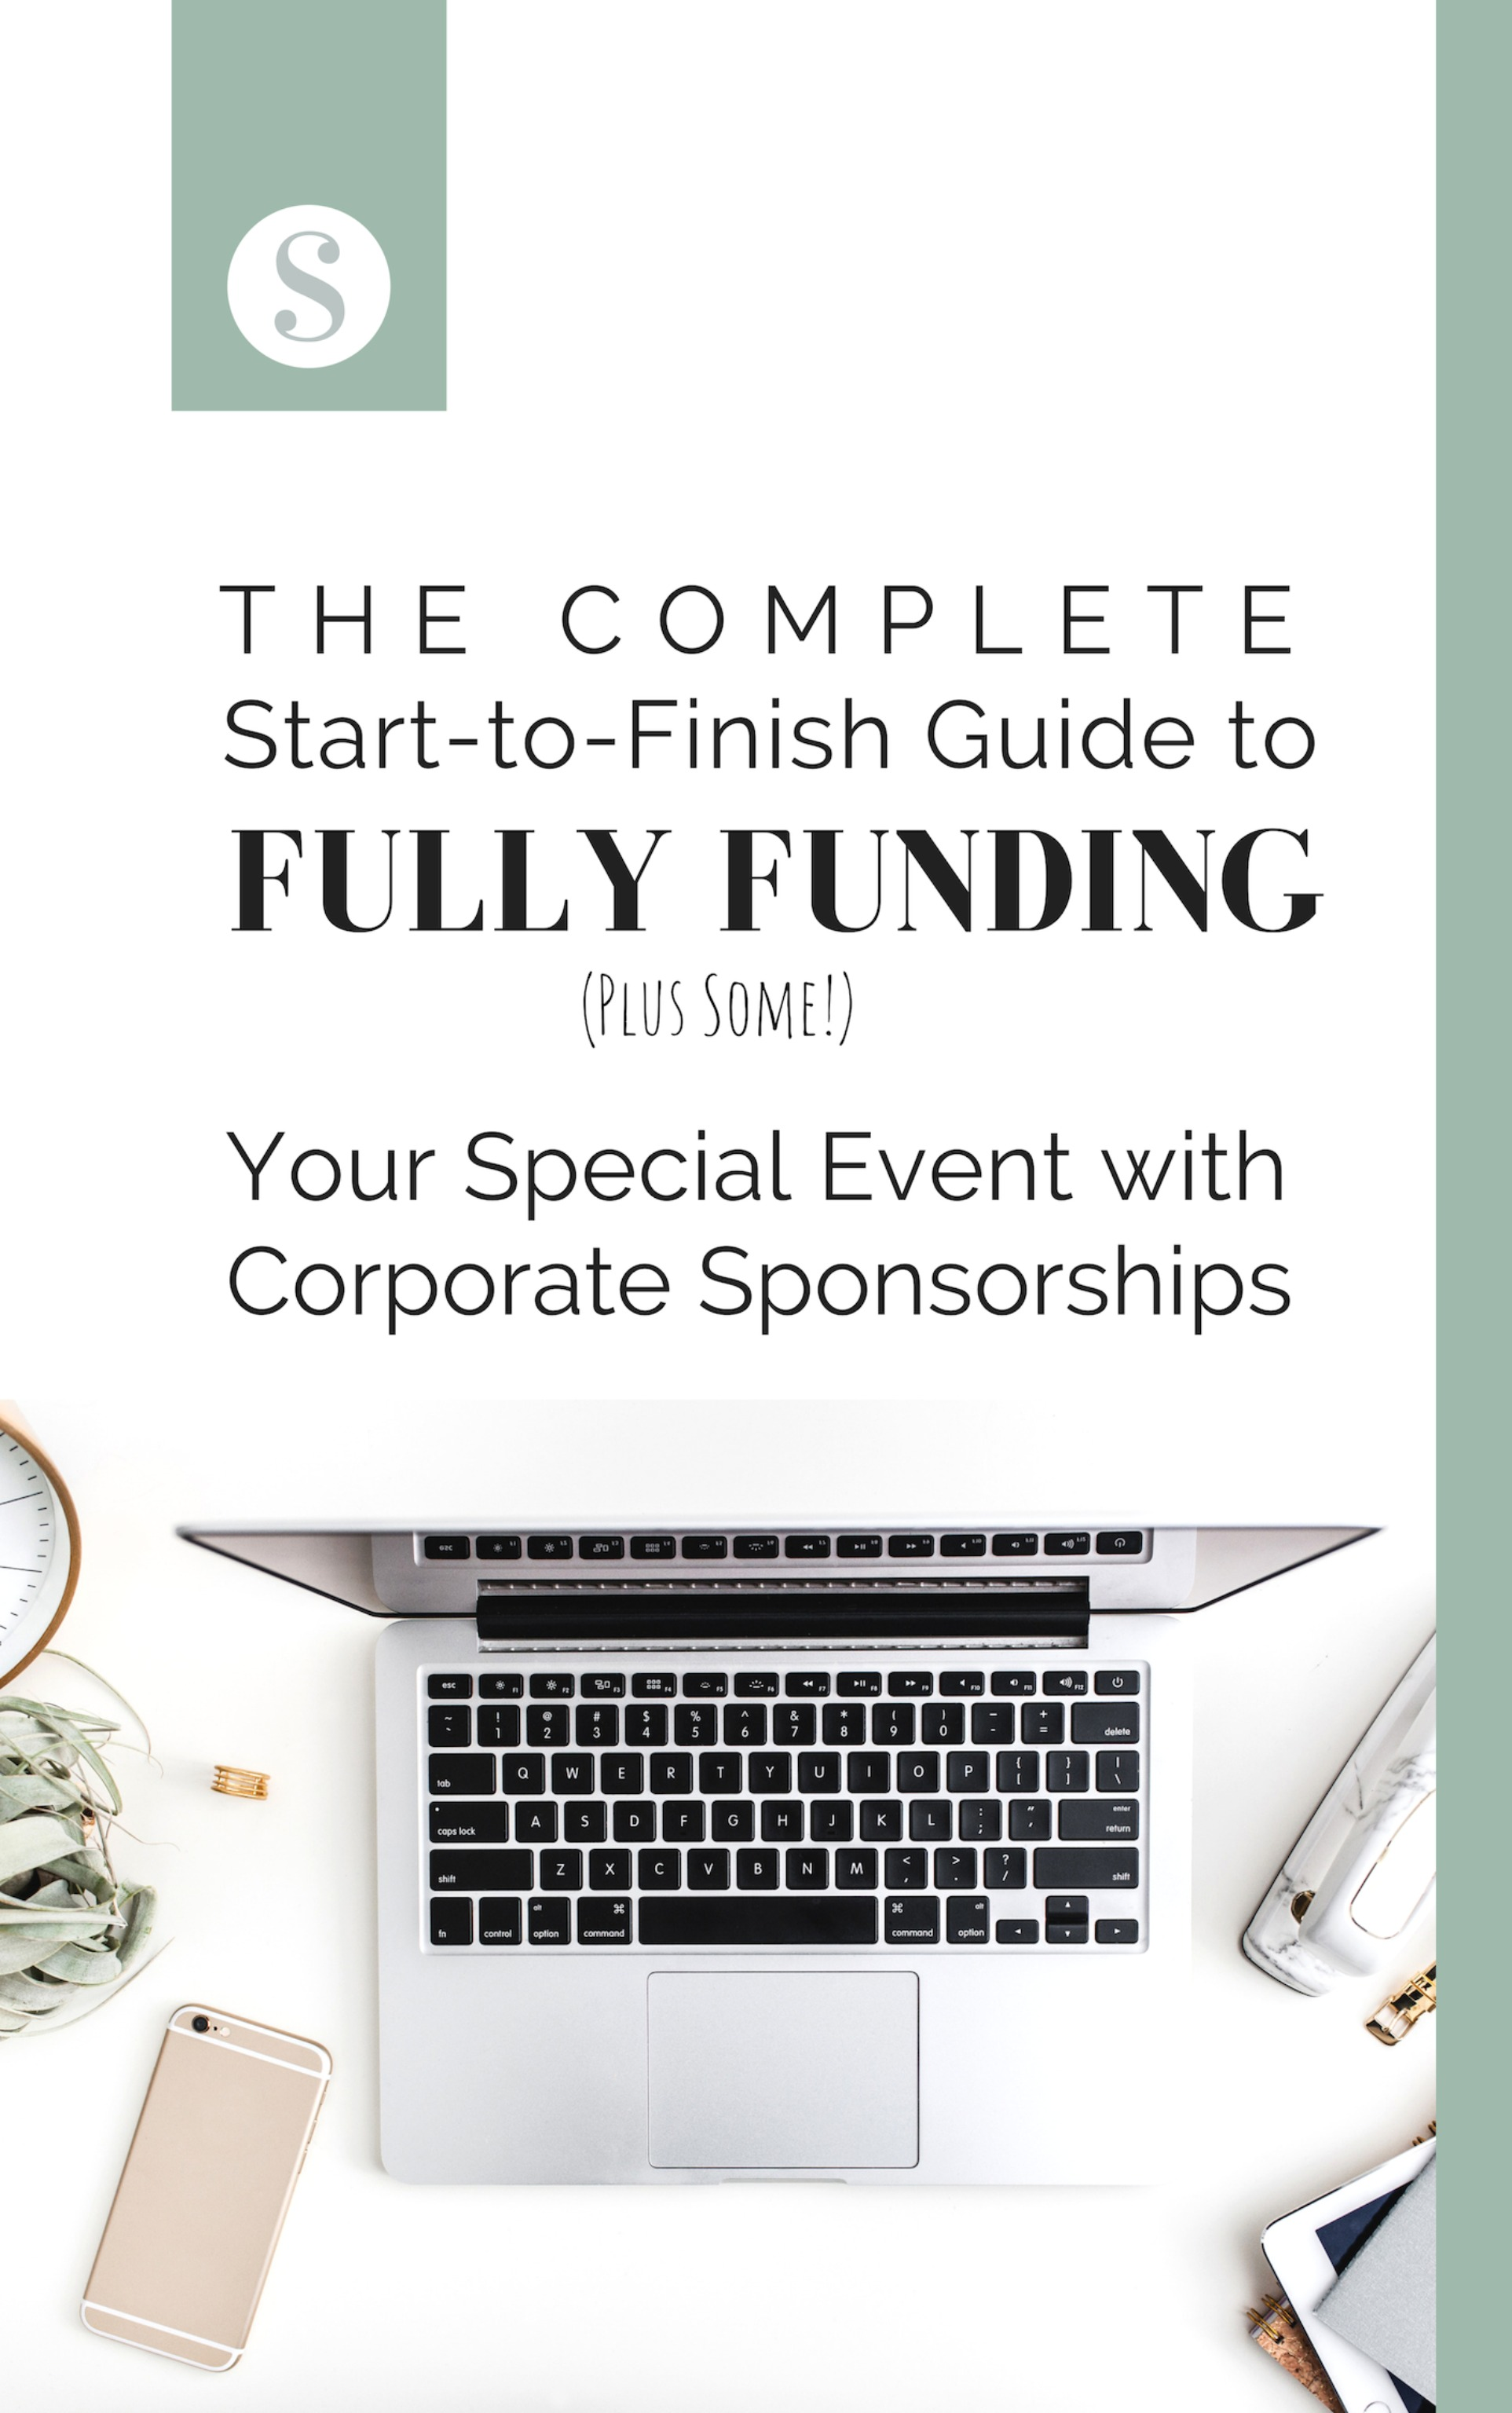 The Complete Guide to Fully Funding your Events with Corporate Sponsorships